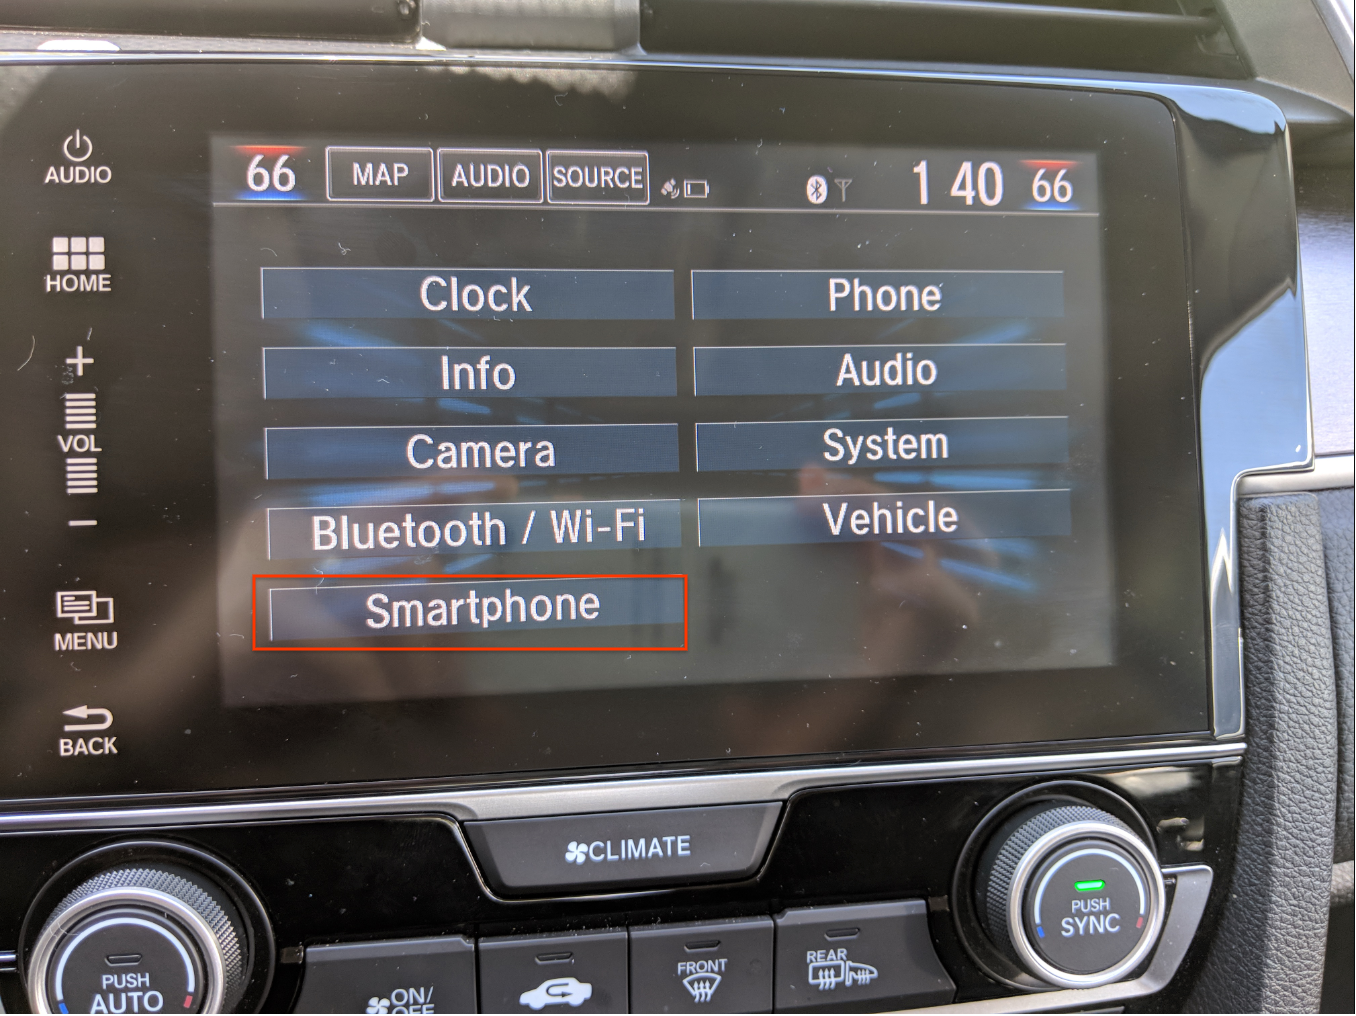 Enable phone device for Android Auto